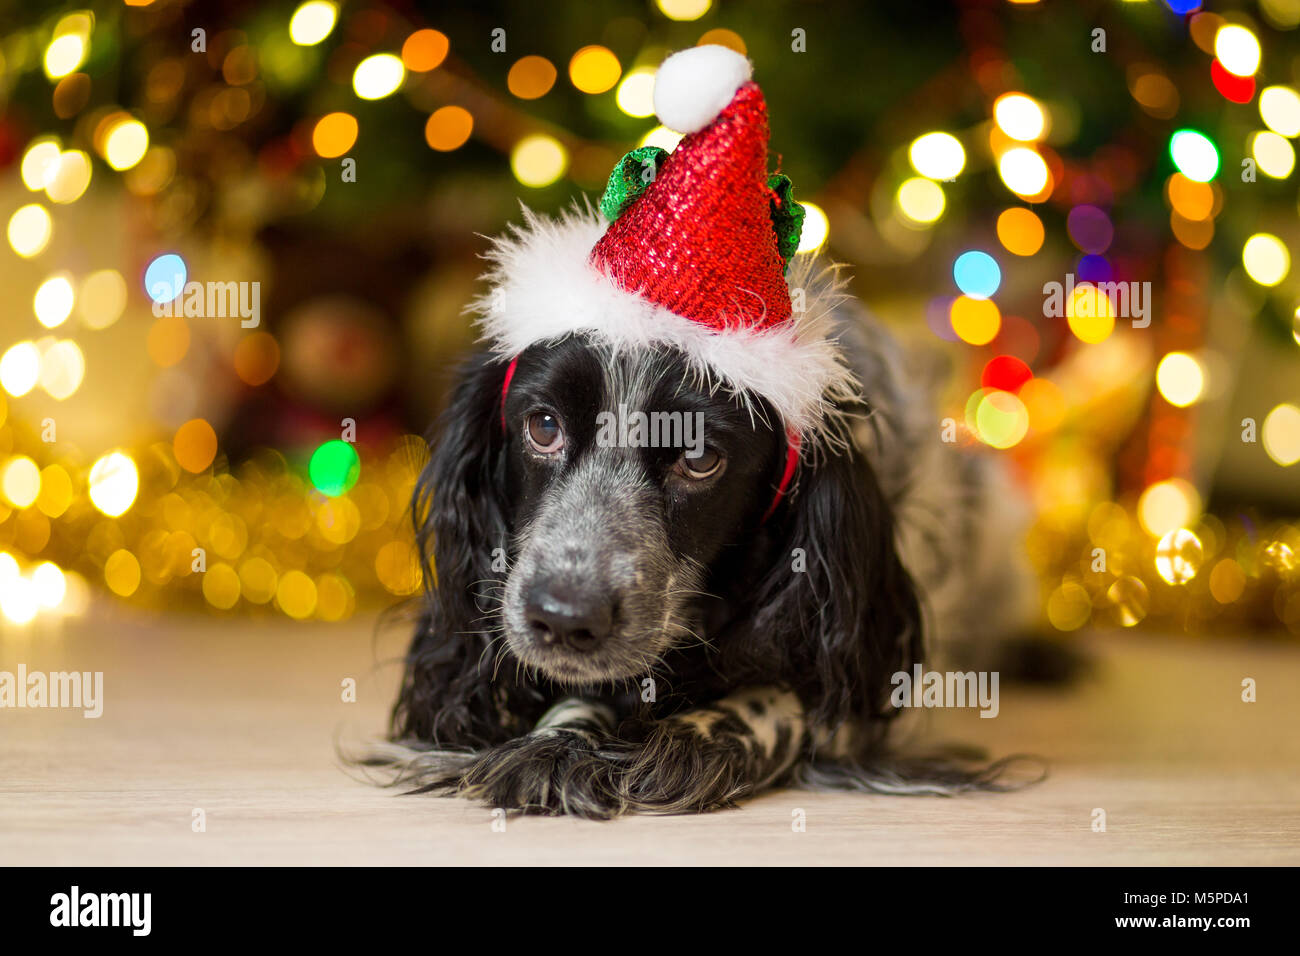 spaniel dog in a gnome cap lies on the floor near a Christmas tree with garlands - Stock Image